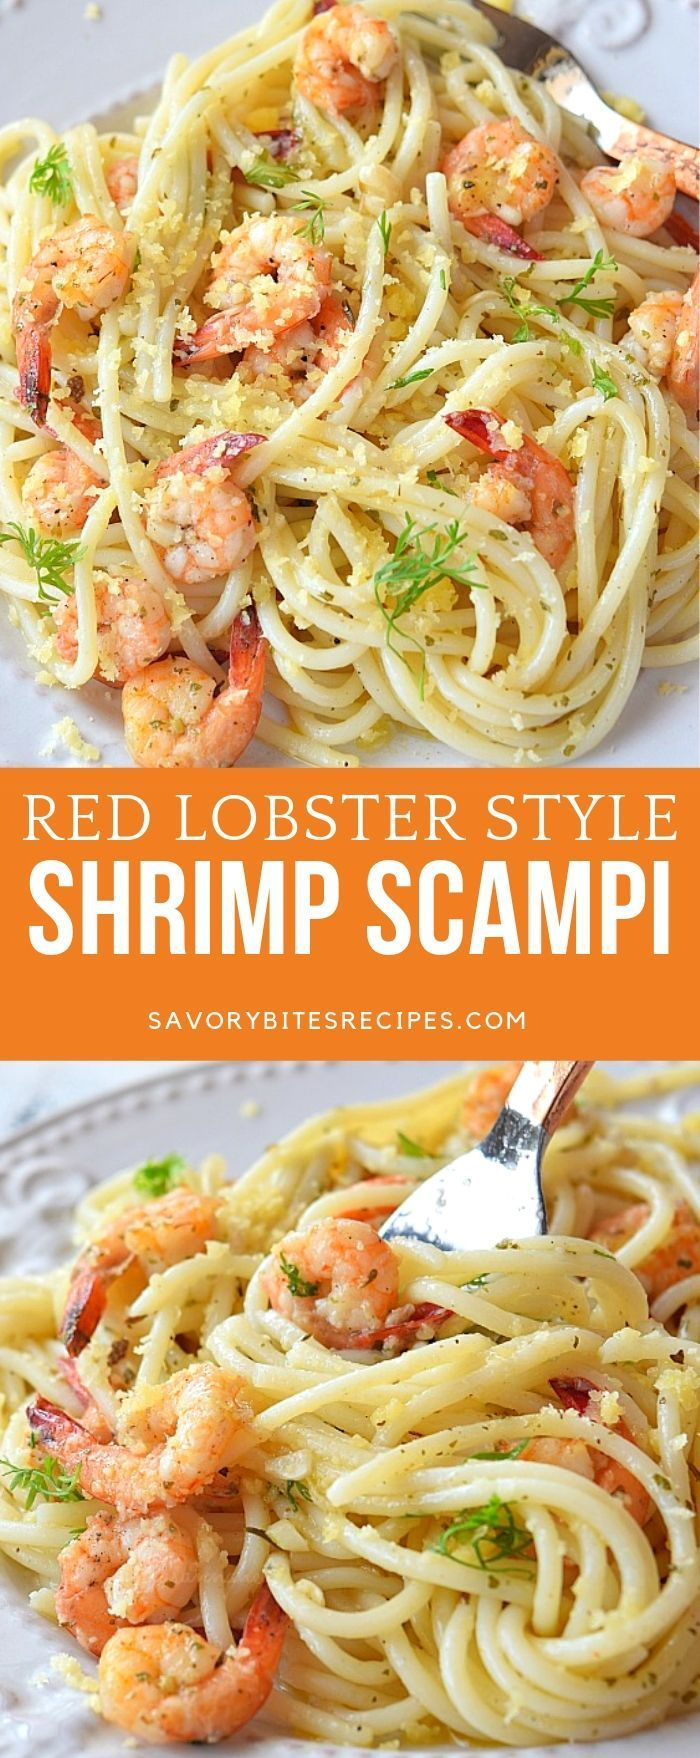 Photo of Shrimp Scampi Recipe